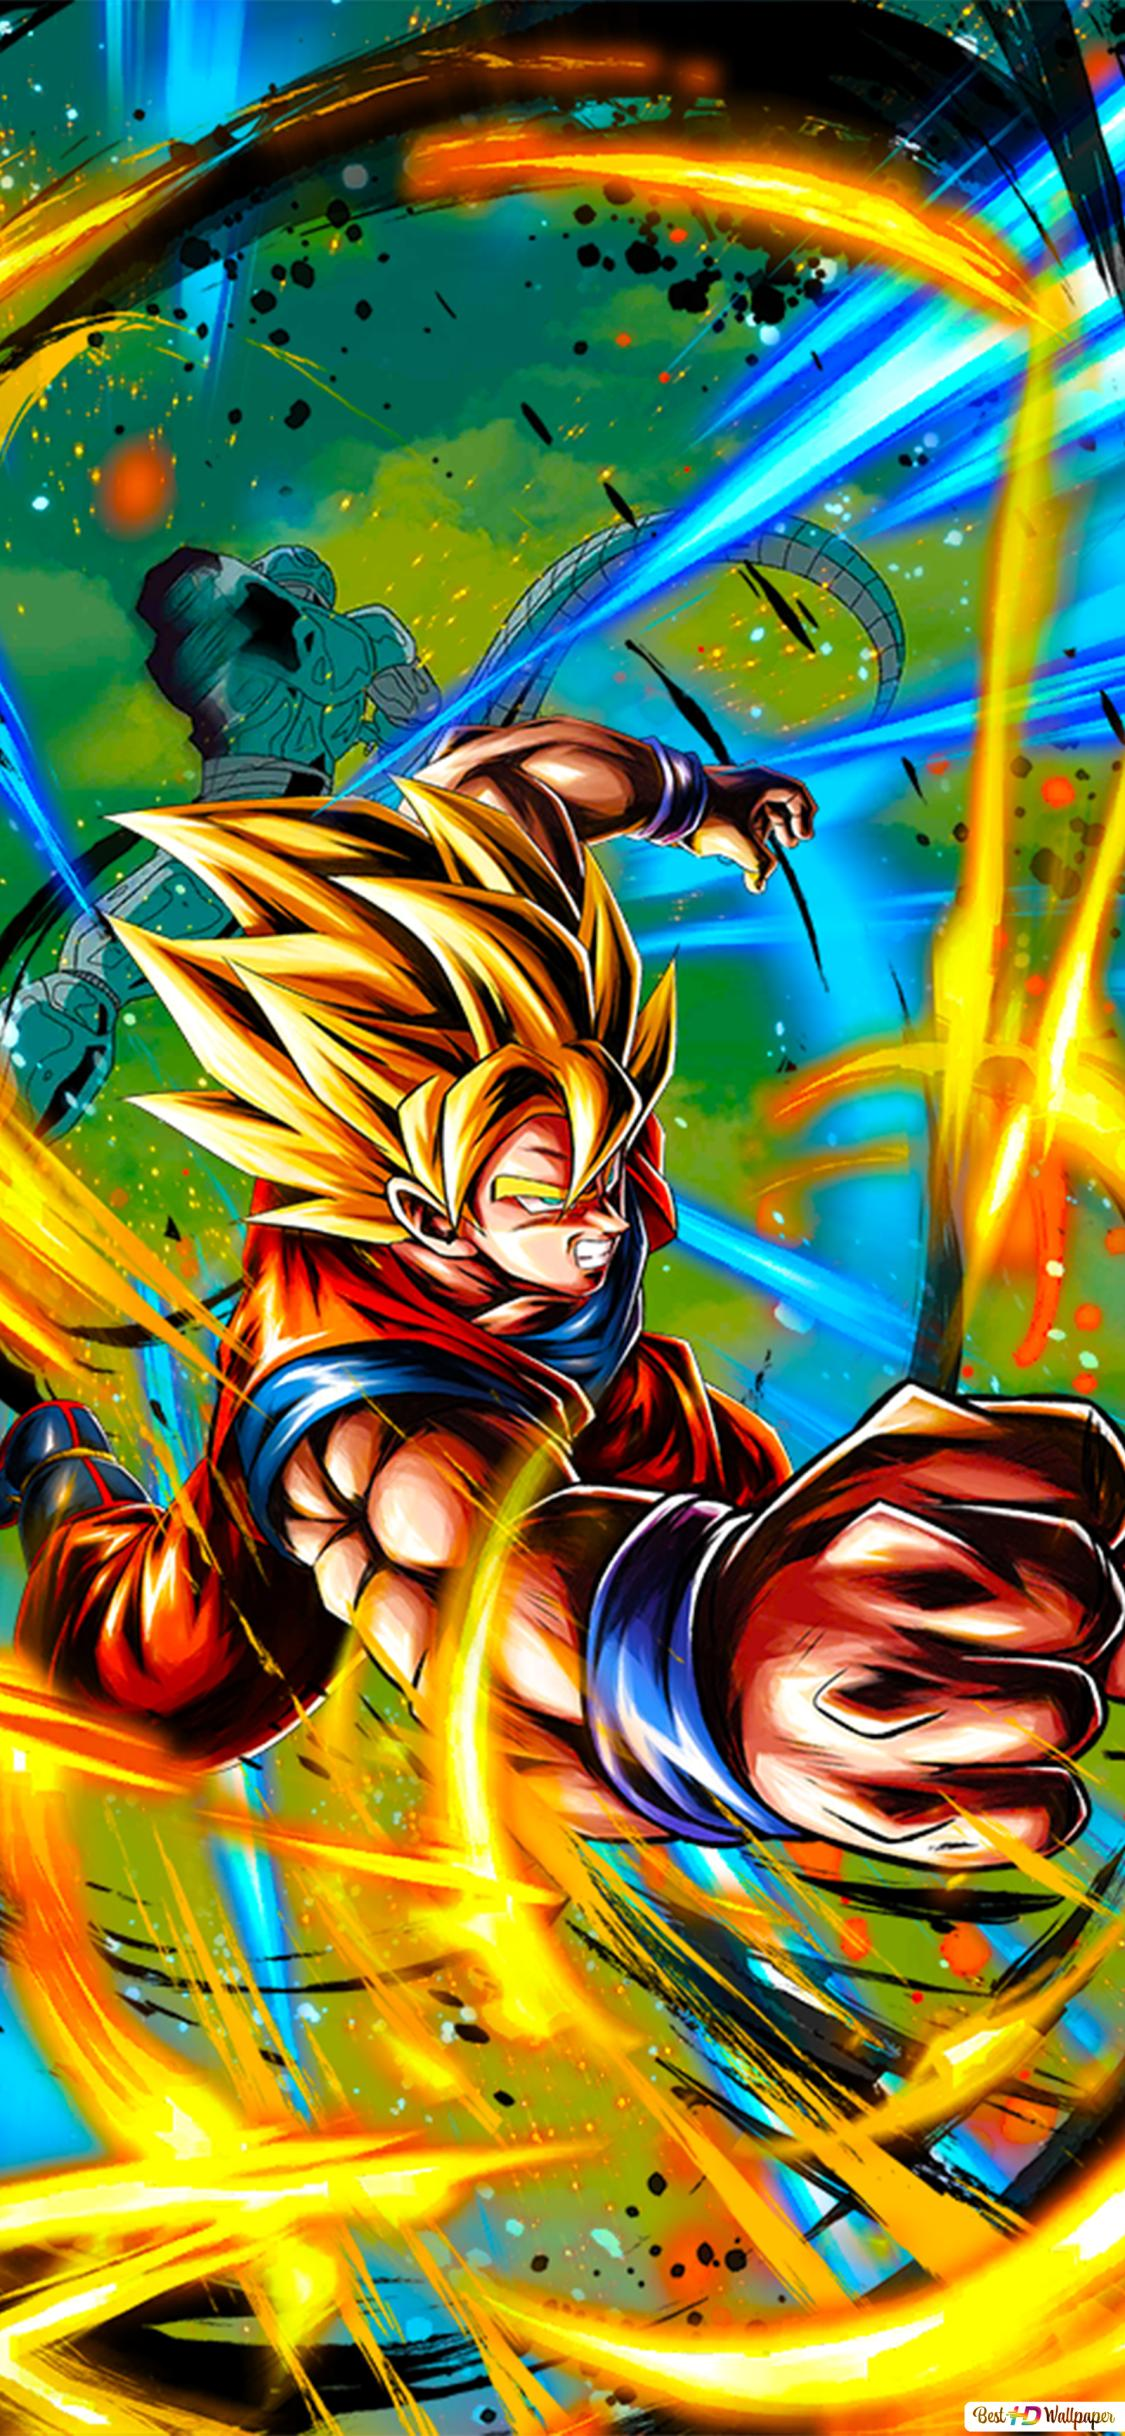 Super Saiyan Goku Dragon Ball Z Movie 7 The Return Of Cooler Android Hd Wallpaper Download